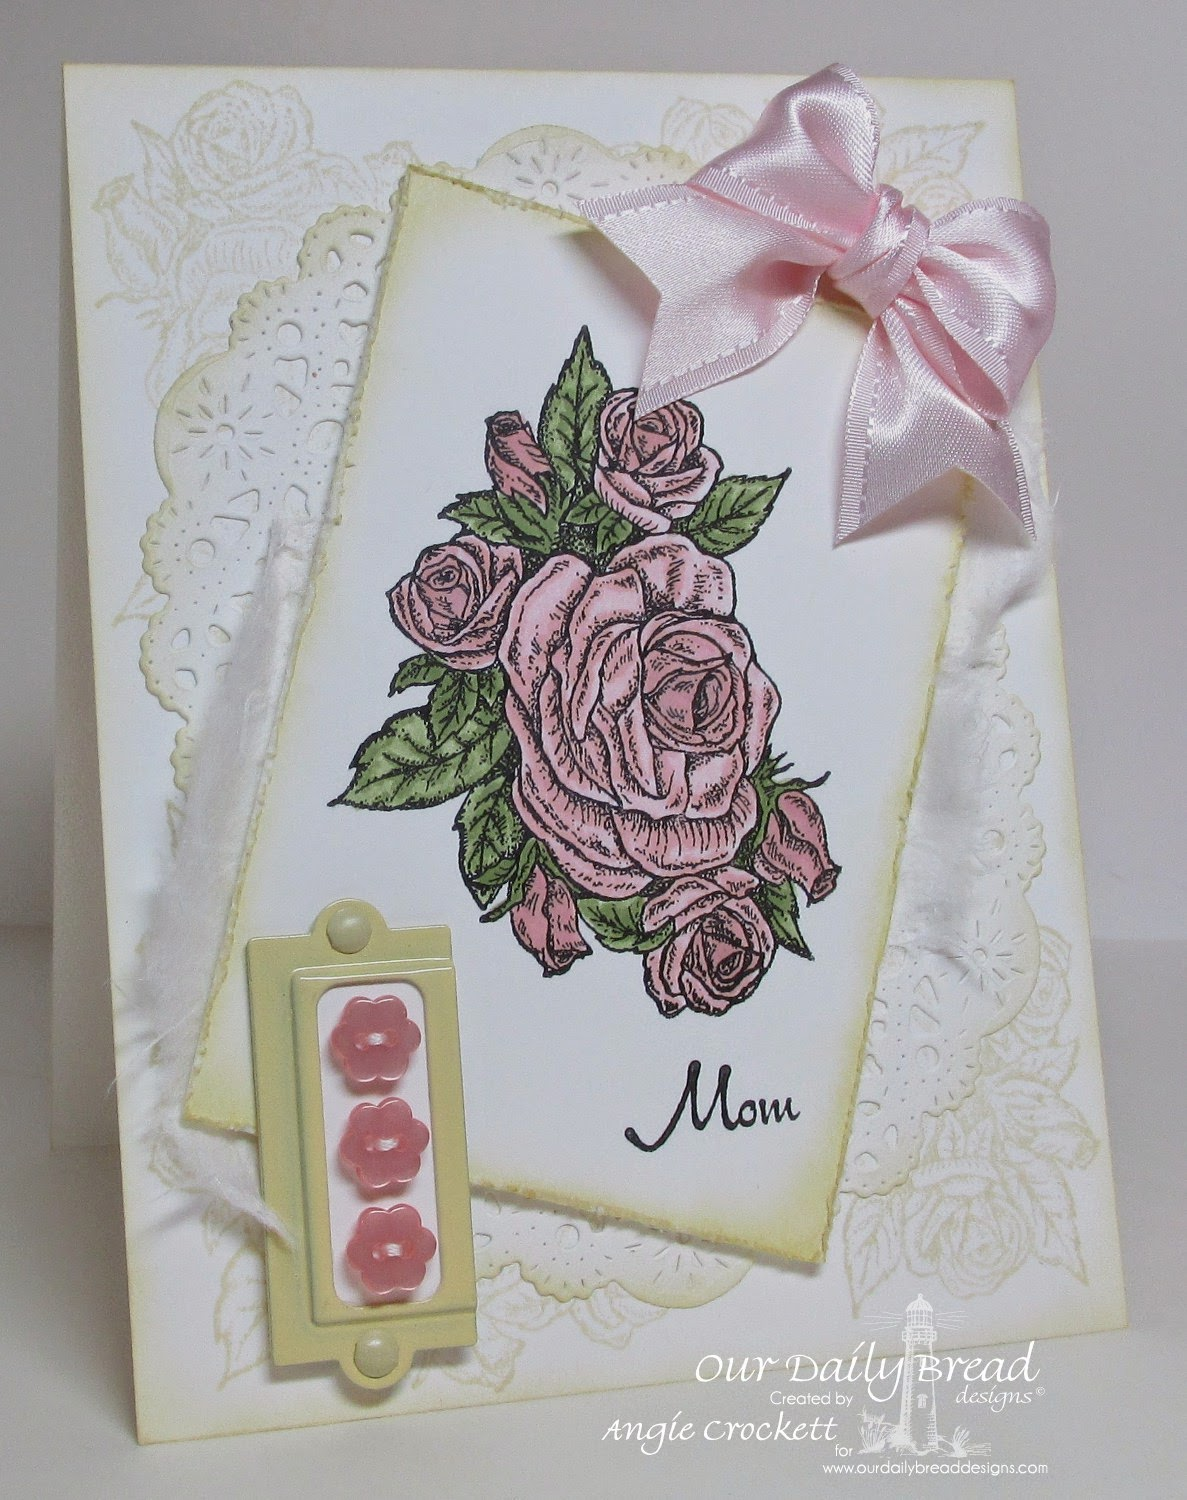 ODBD Smell The Roses, Card Designer Angie Crockett